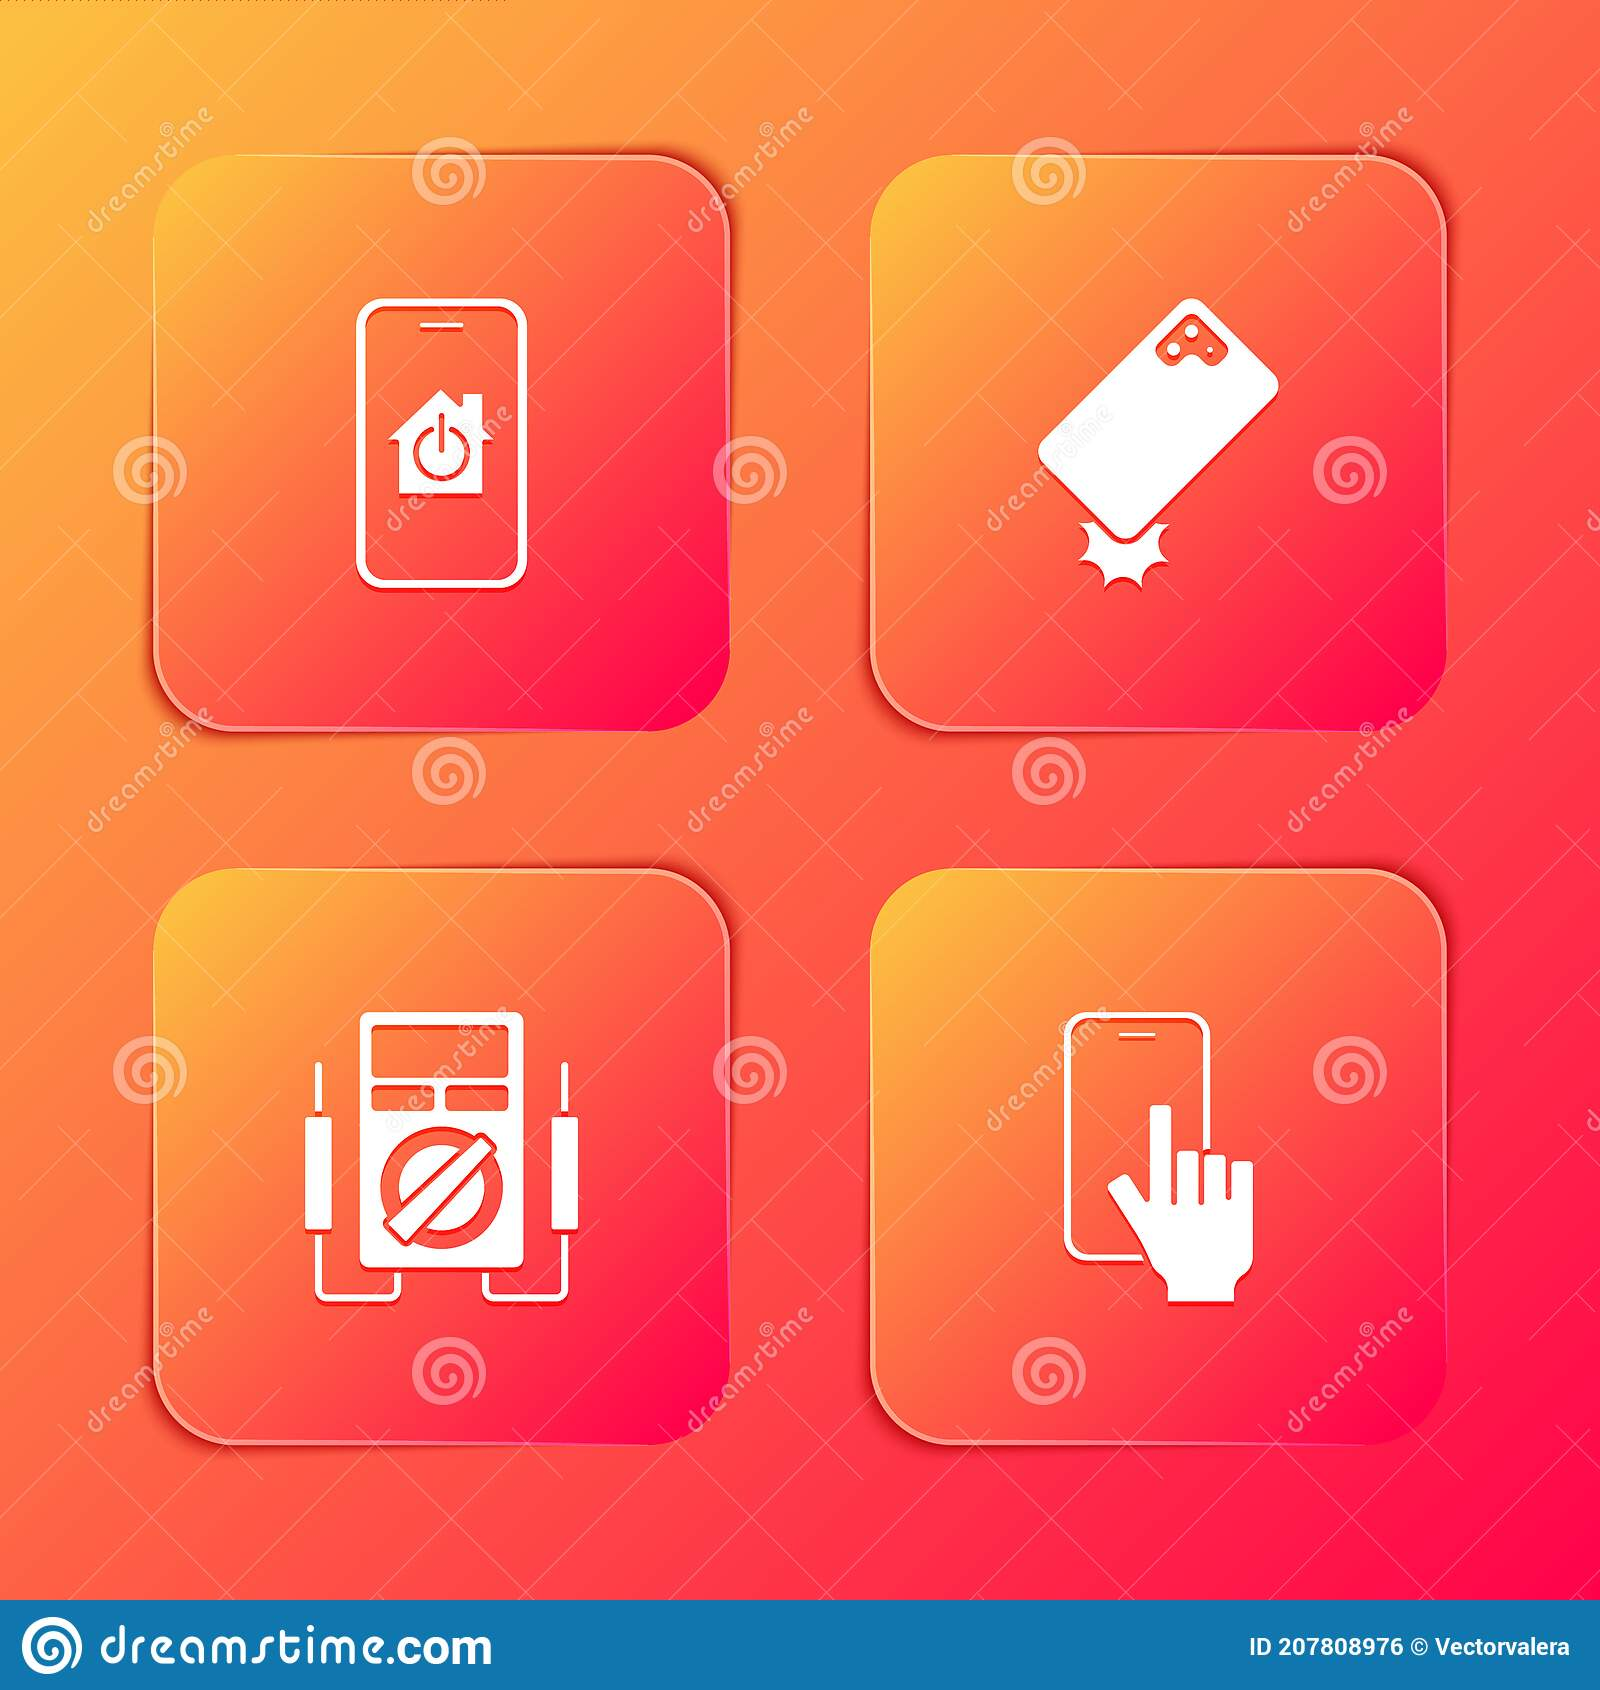 Set Mobile With Smart Home Shockproof Phone Multimeter And Phone Repair Service Icon Vector Stock Illustration Illustration Of Mobile Equipment 207808976